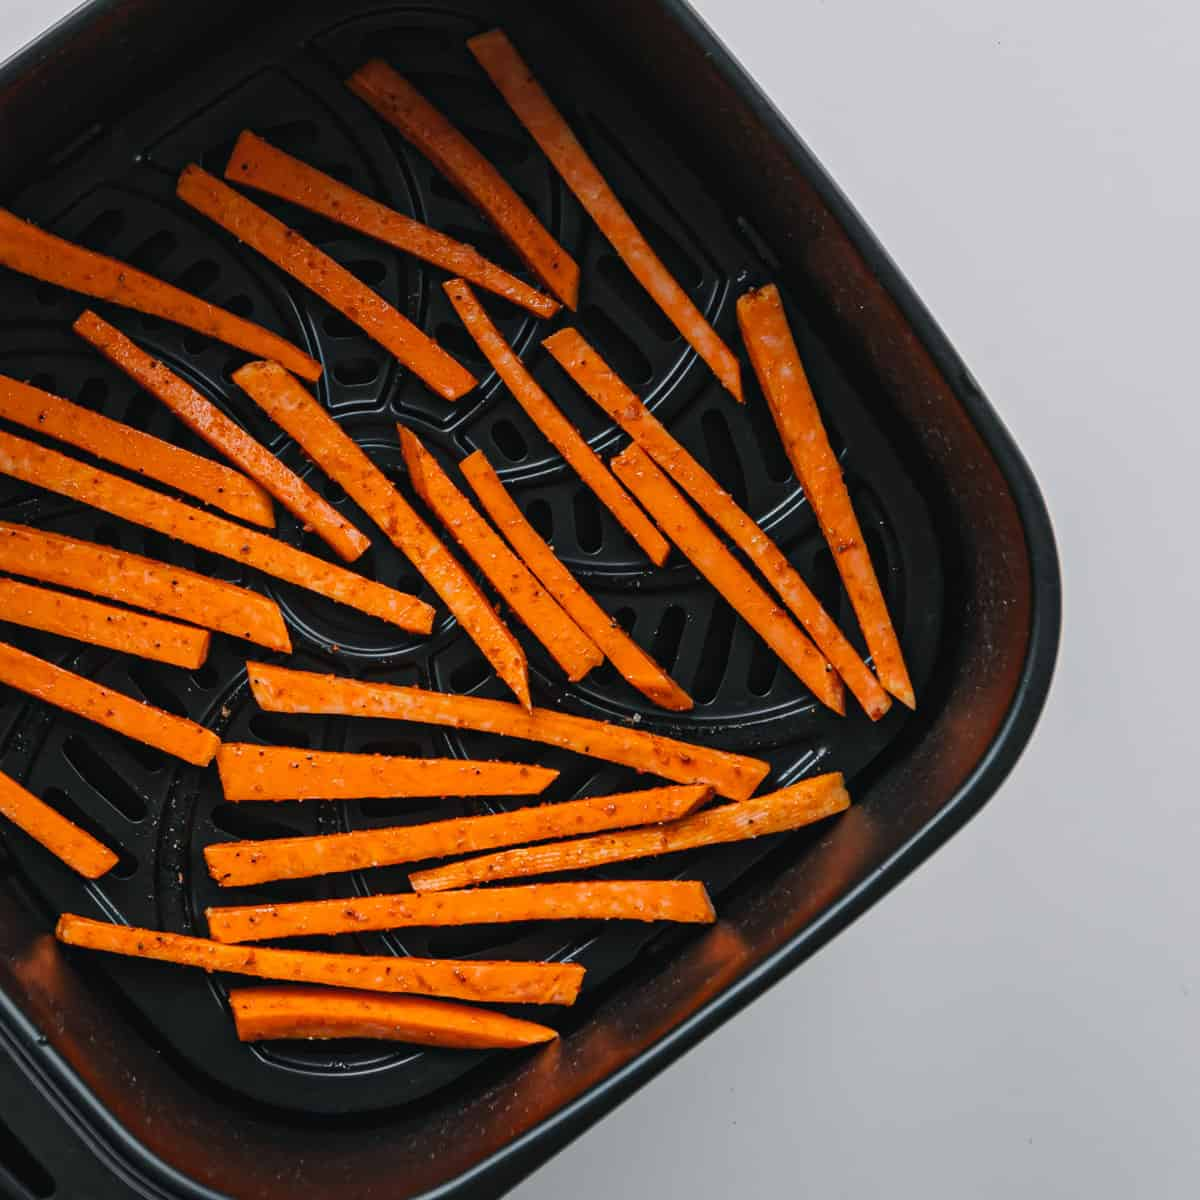 Cook the Sweet Potatoes in an Air Fryer